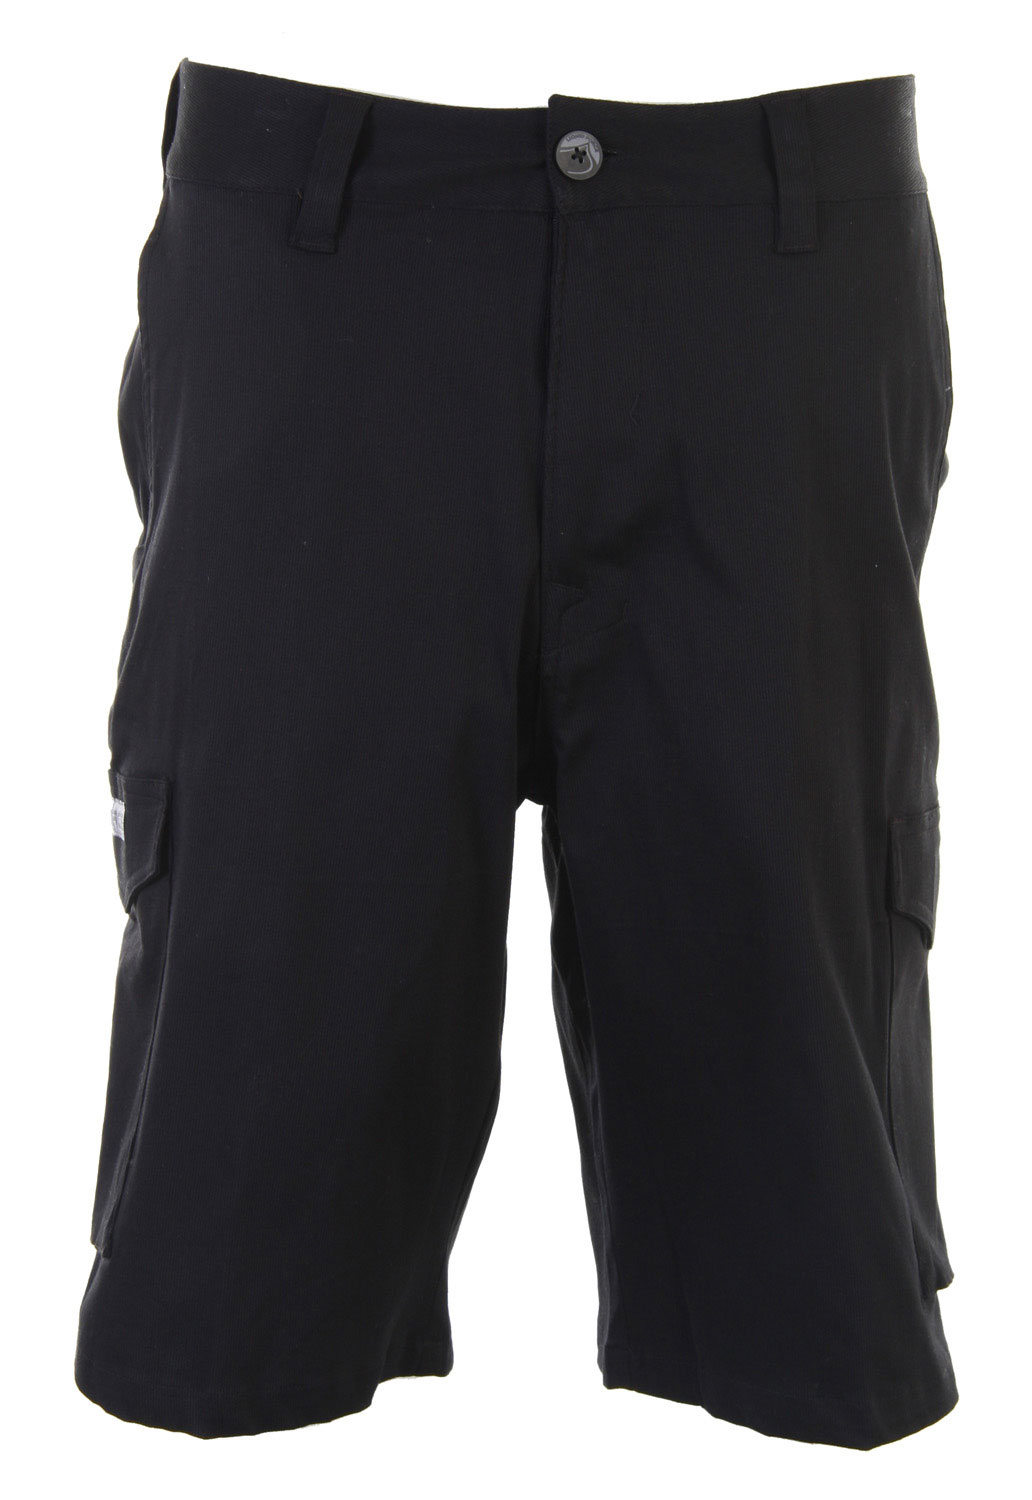 "Add this classic piece to your wardrobe. The Liquid Force Game day Shorts is made with cotton and lycra. Featuring a classic cut with a solid color throughout, these shorts will go with almost anything in your closet. With pockets on the side, this cargo short is casual for daytime wear. Style it with your favorite polo shirt or a simple T-shirt and you're ready to explore town.Key Features of the Liquid Force Gameday Shorts: 23"" Outseam walkshort 95% cotton, 5% Lycra Side Cargo and Cell phone pockets - $23.95"